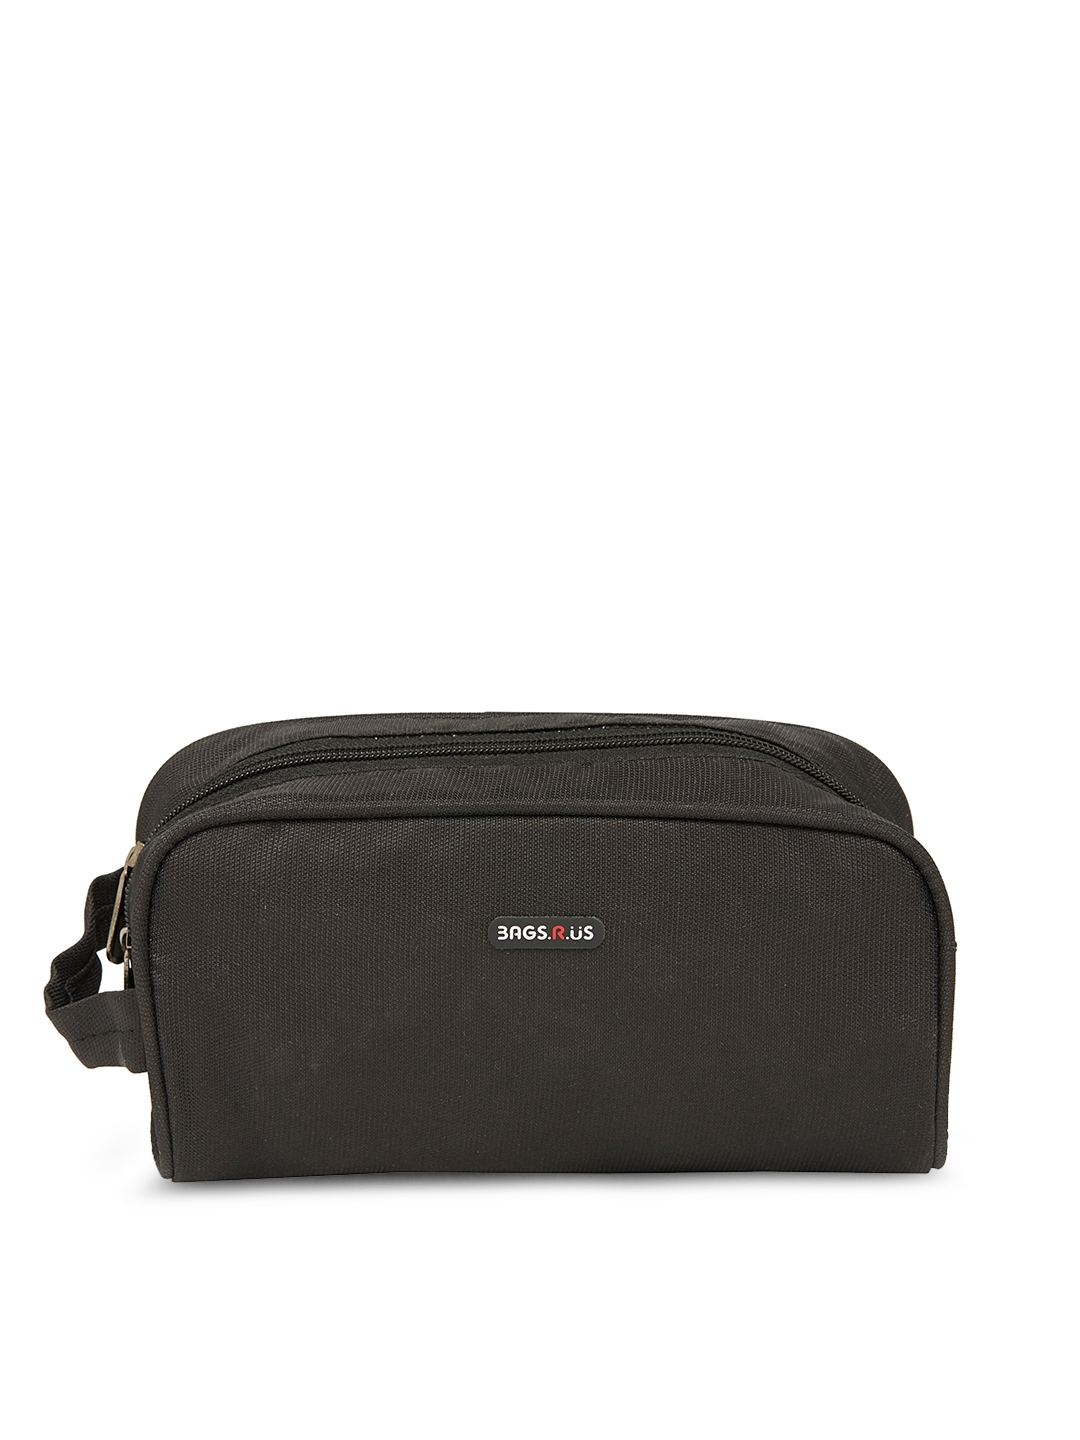 Bags.R.us Unisex Black Travel Toiletry Kit